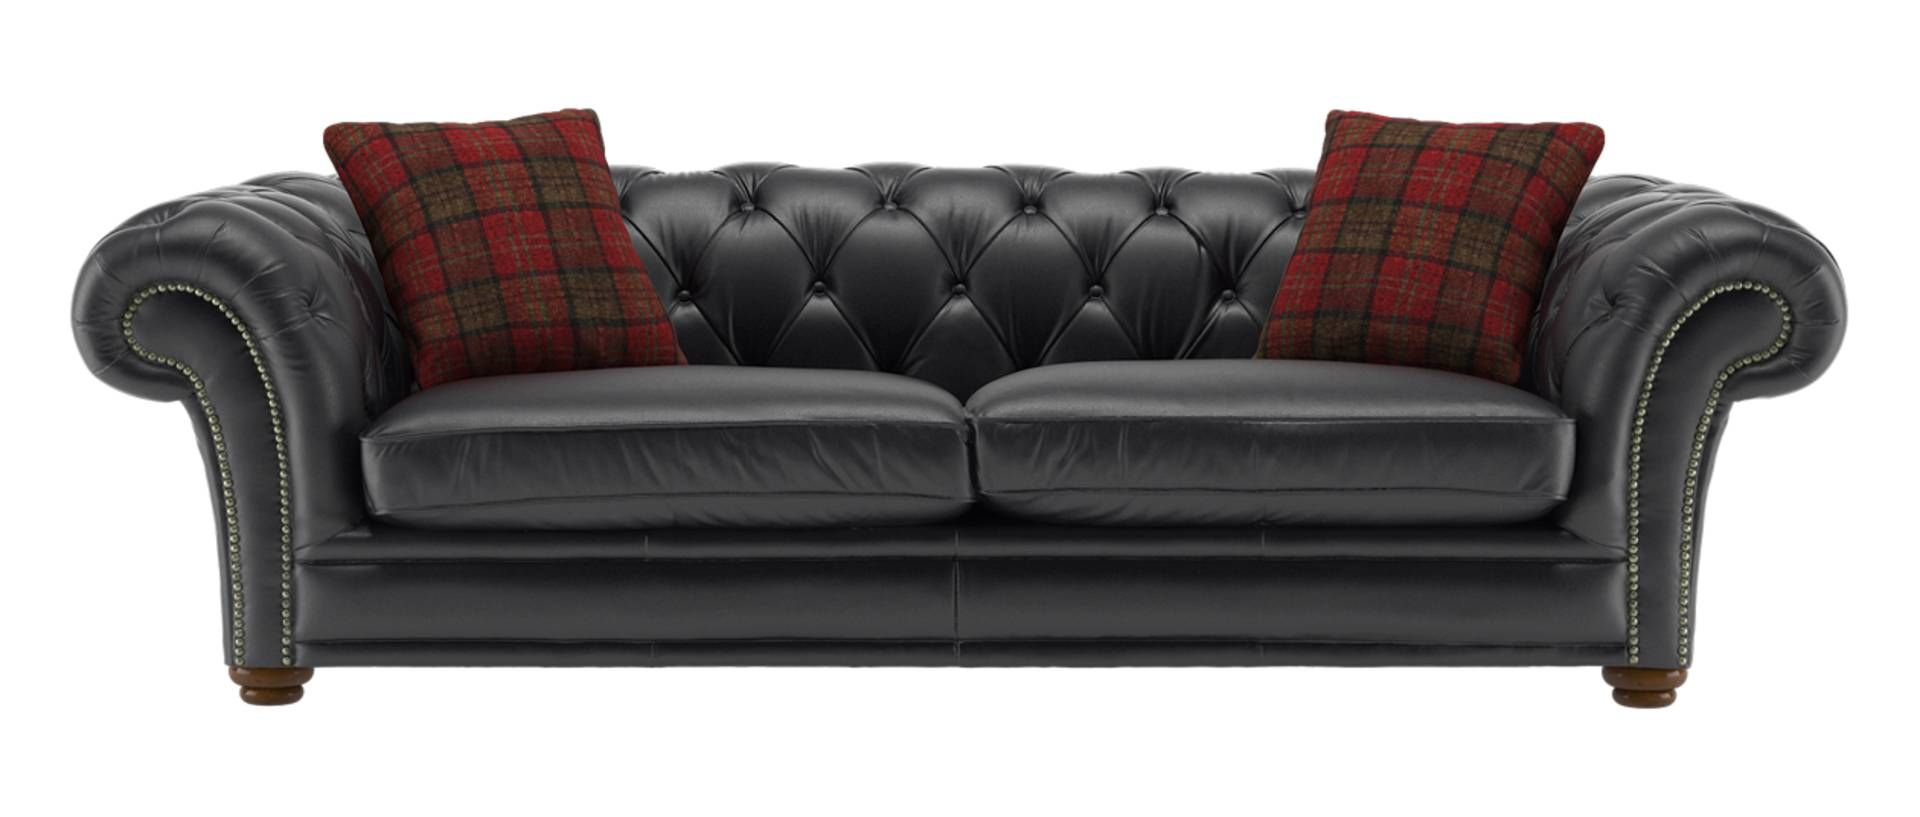 The Range Living Room Furniture Stamford Leather Fabric Sofa Range Sofology Living Room